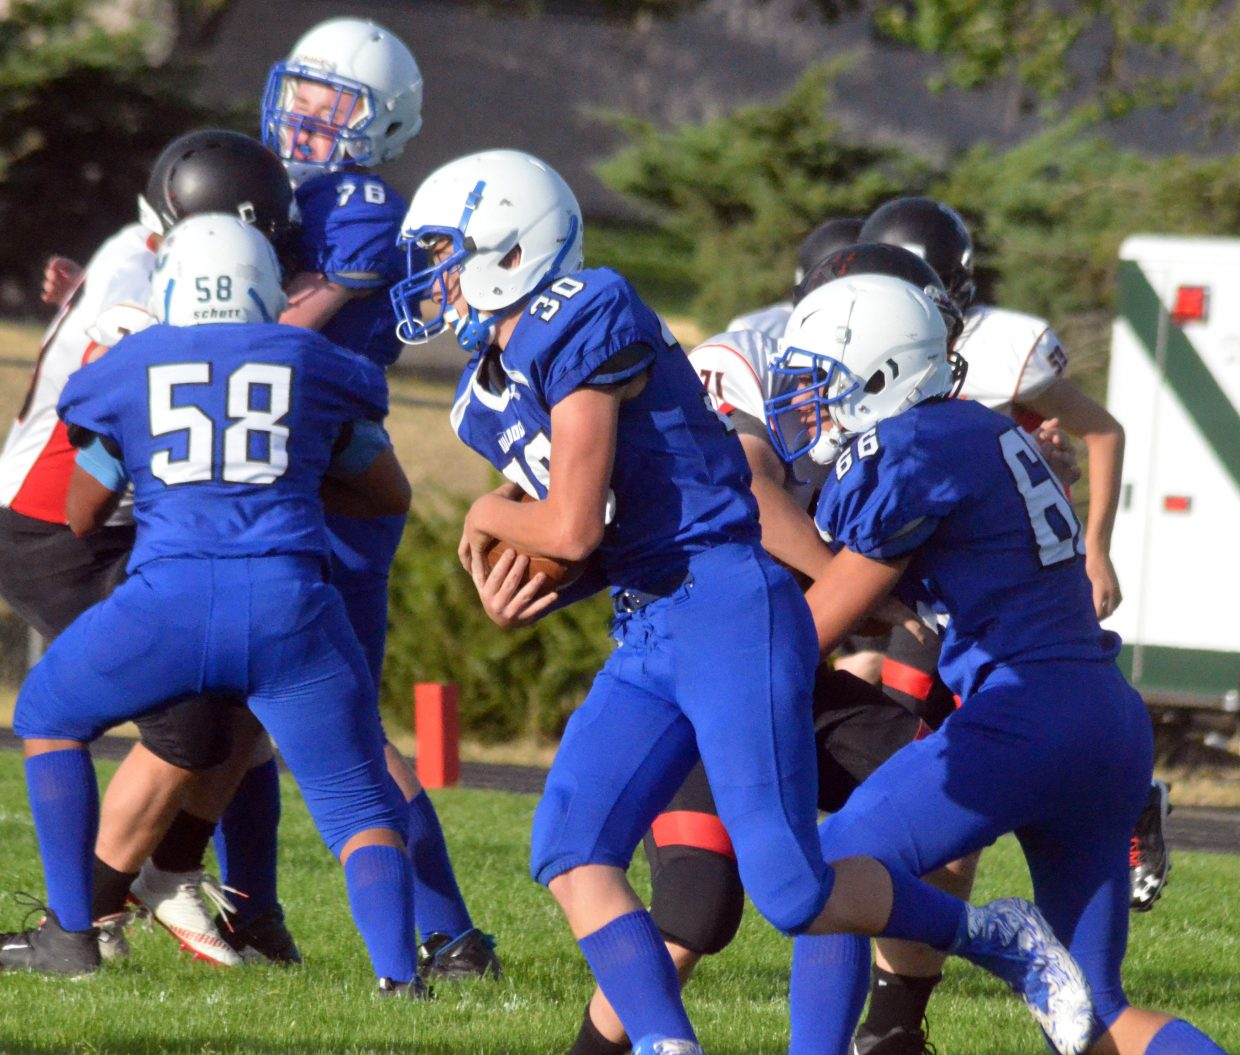 Moffat County High School's Brock Hartung takes command of the ball in the Bulldog backfield.